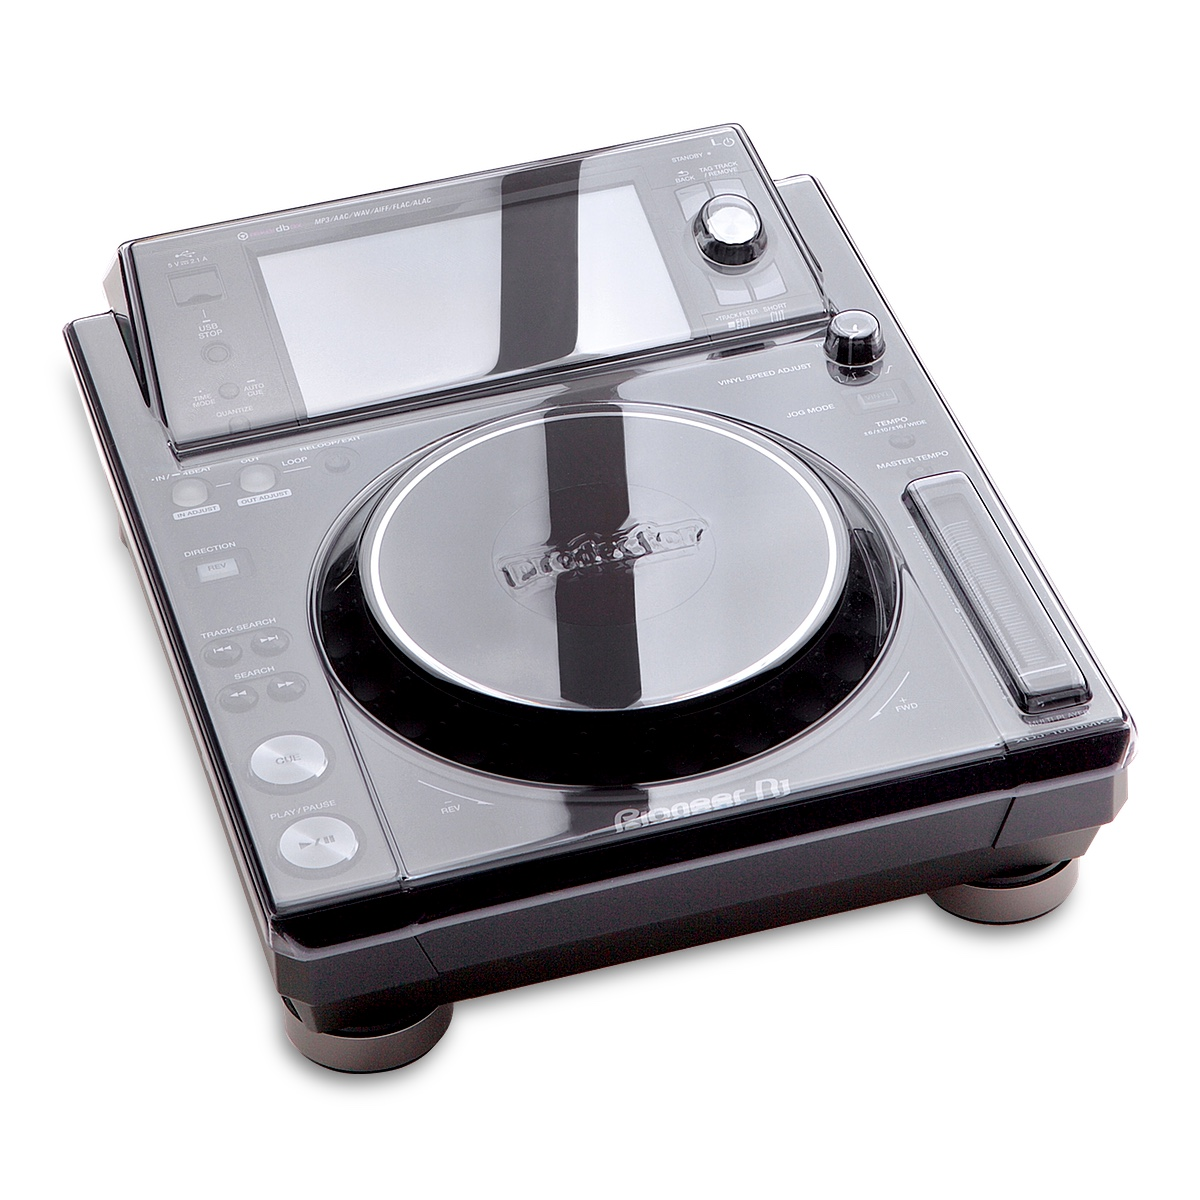 Prodector Pioneer XDJ-1000 MK2 dustcover